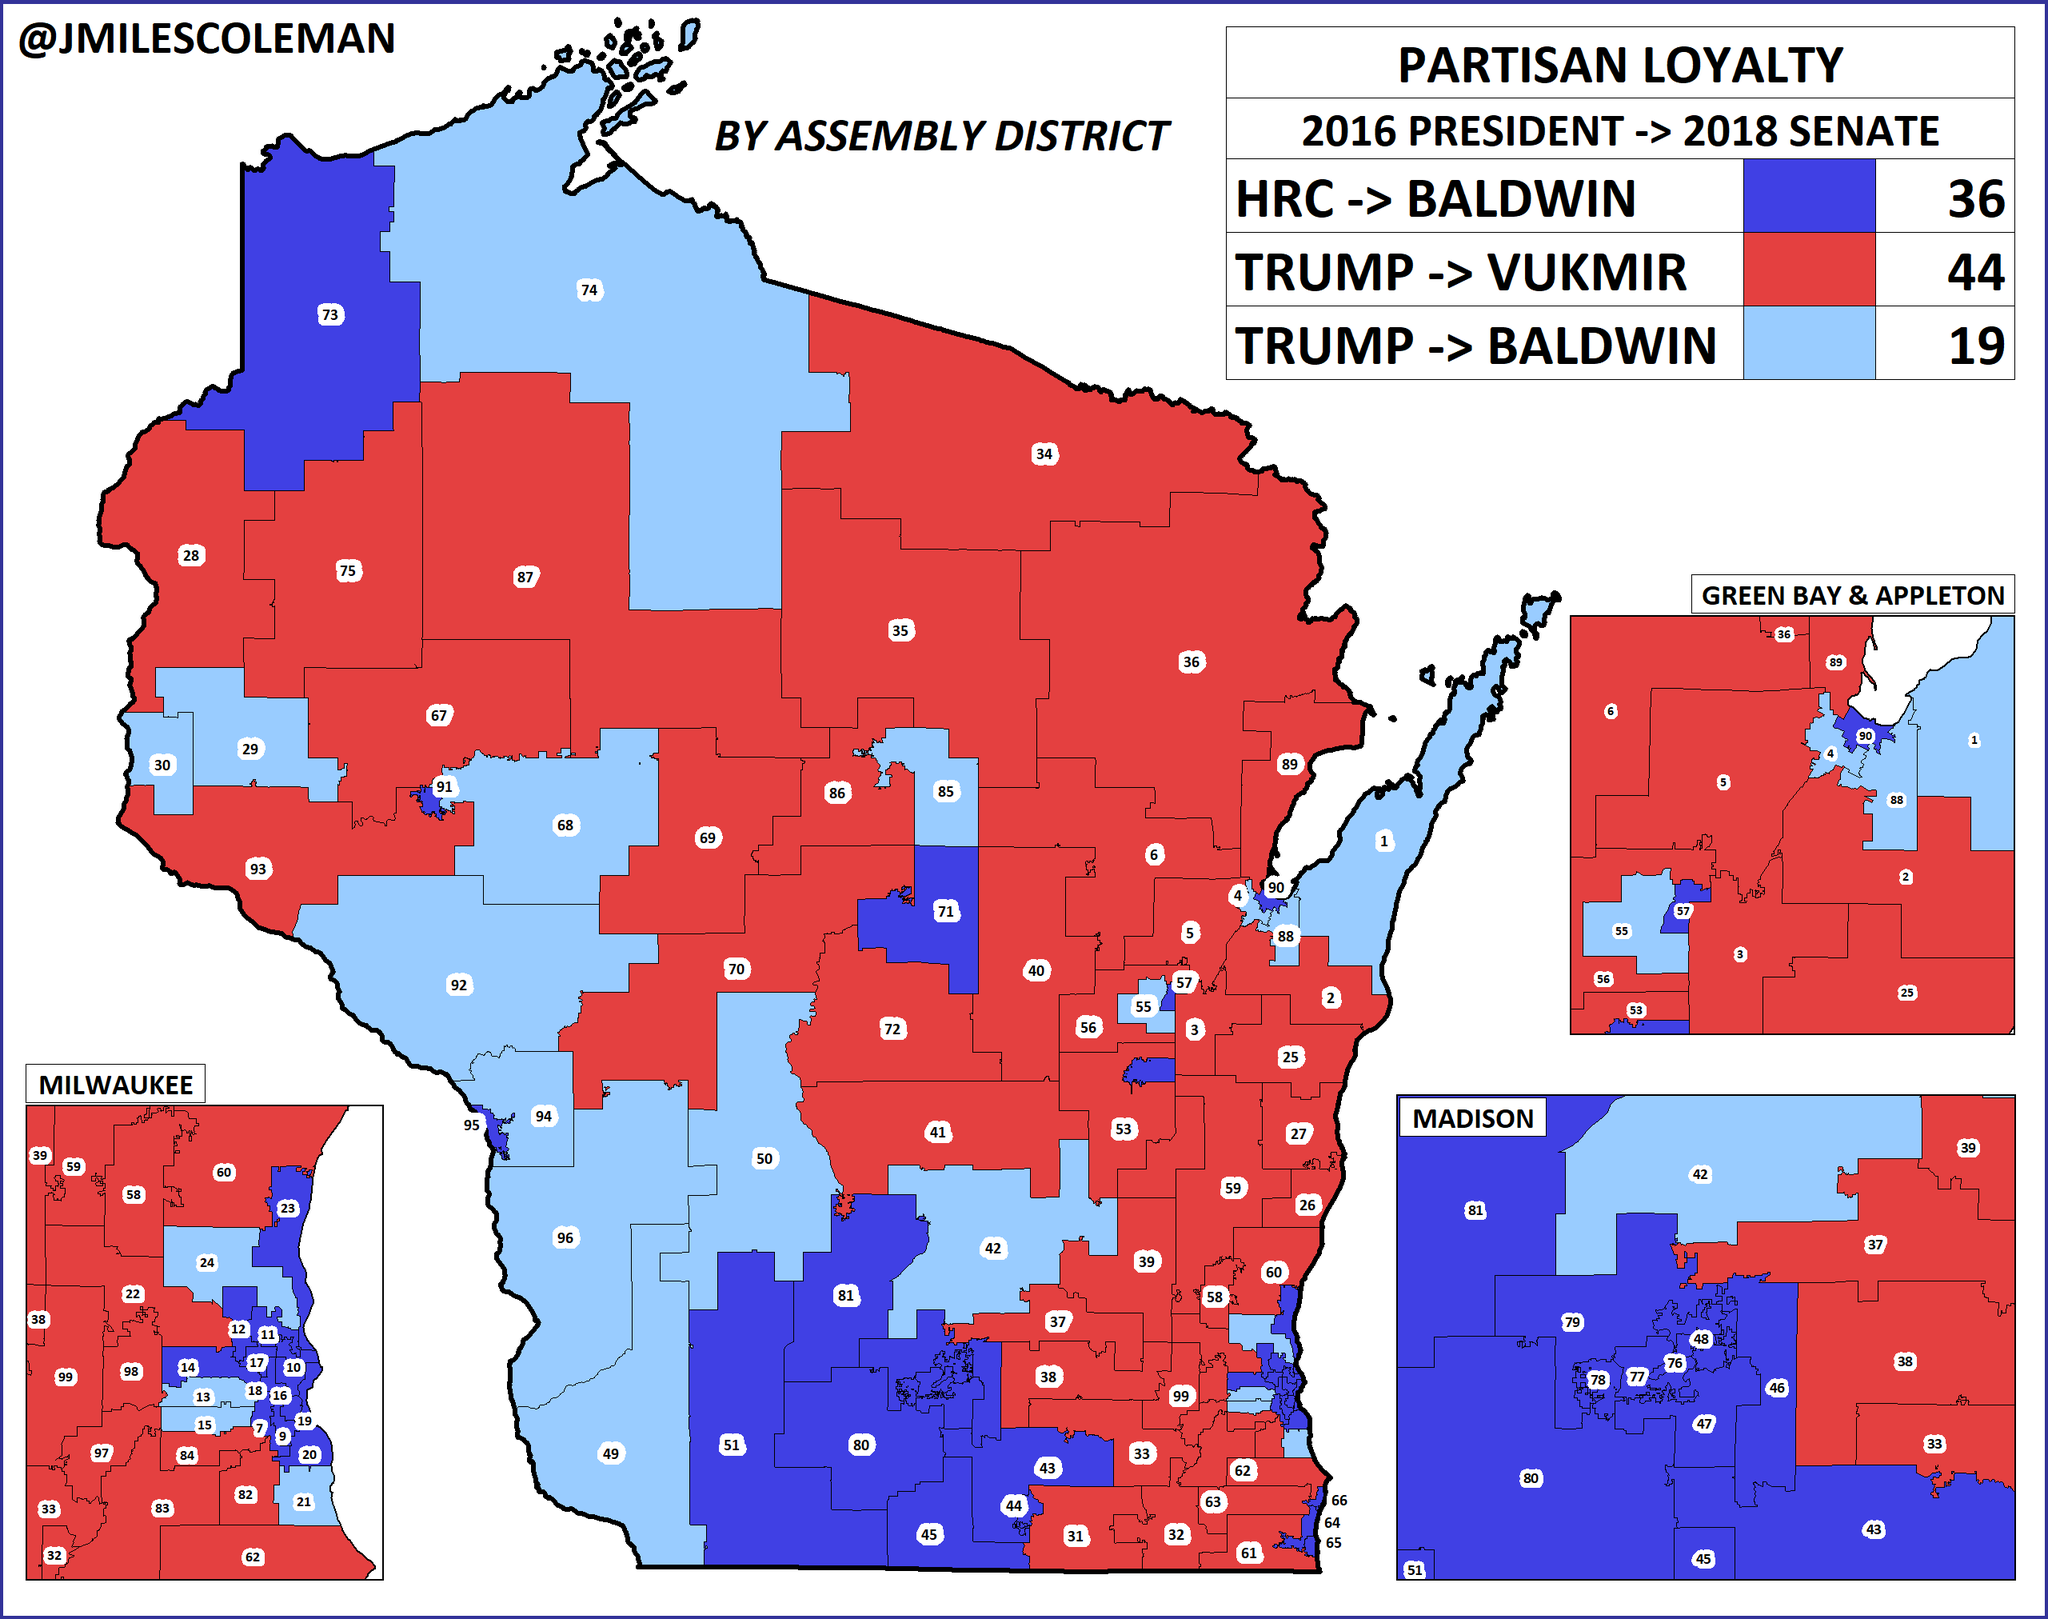 Wisconsin narrowly voted for the President in 2016, but sent @tammybaldwin (D) back to the Senate by 11% last year. Baldwin flipped 19 Assembly Districts (light blue); many of them voted for Obama twice, though she also made significant gains in suburban ADs. #wisen #wipolitics https://t.co/9ahL7PU6SP